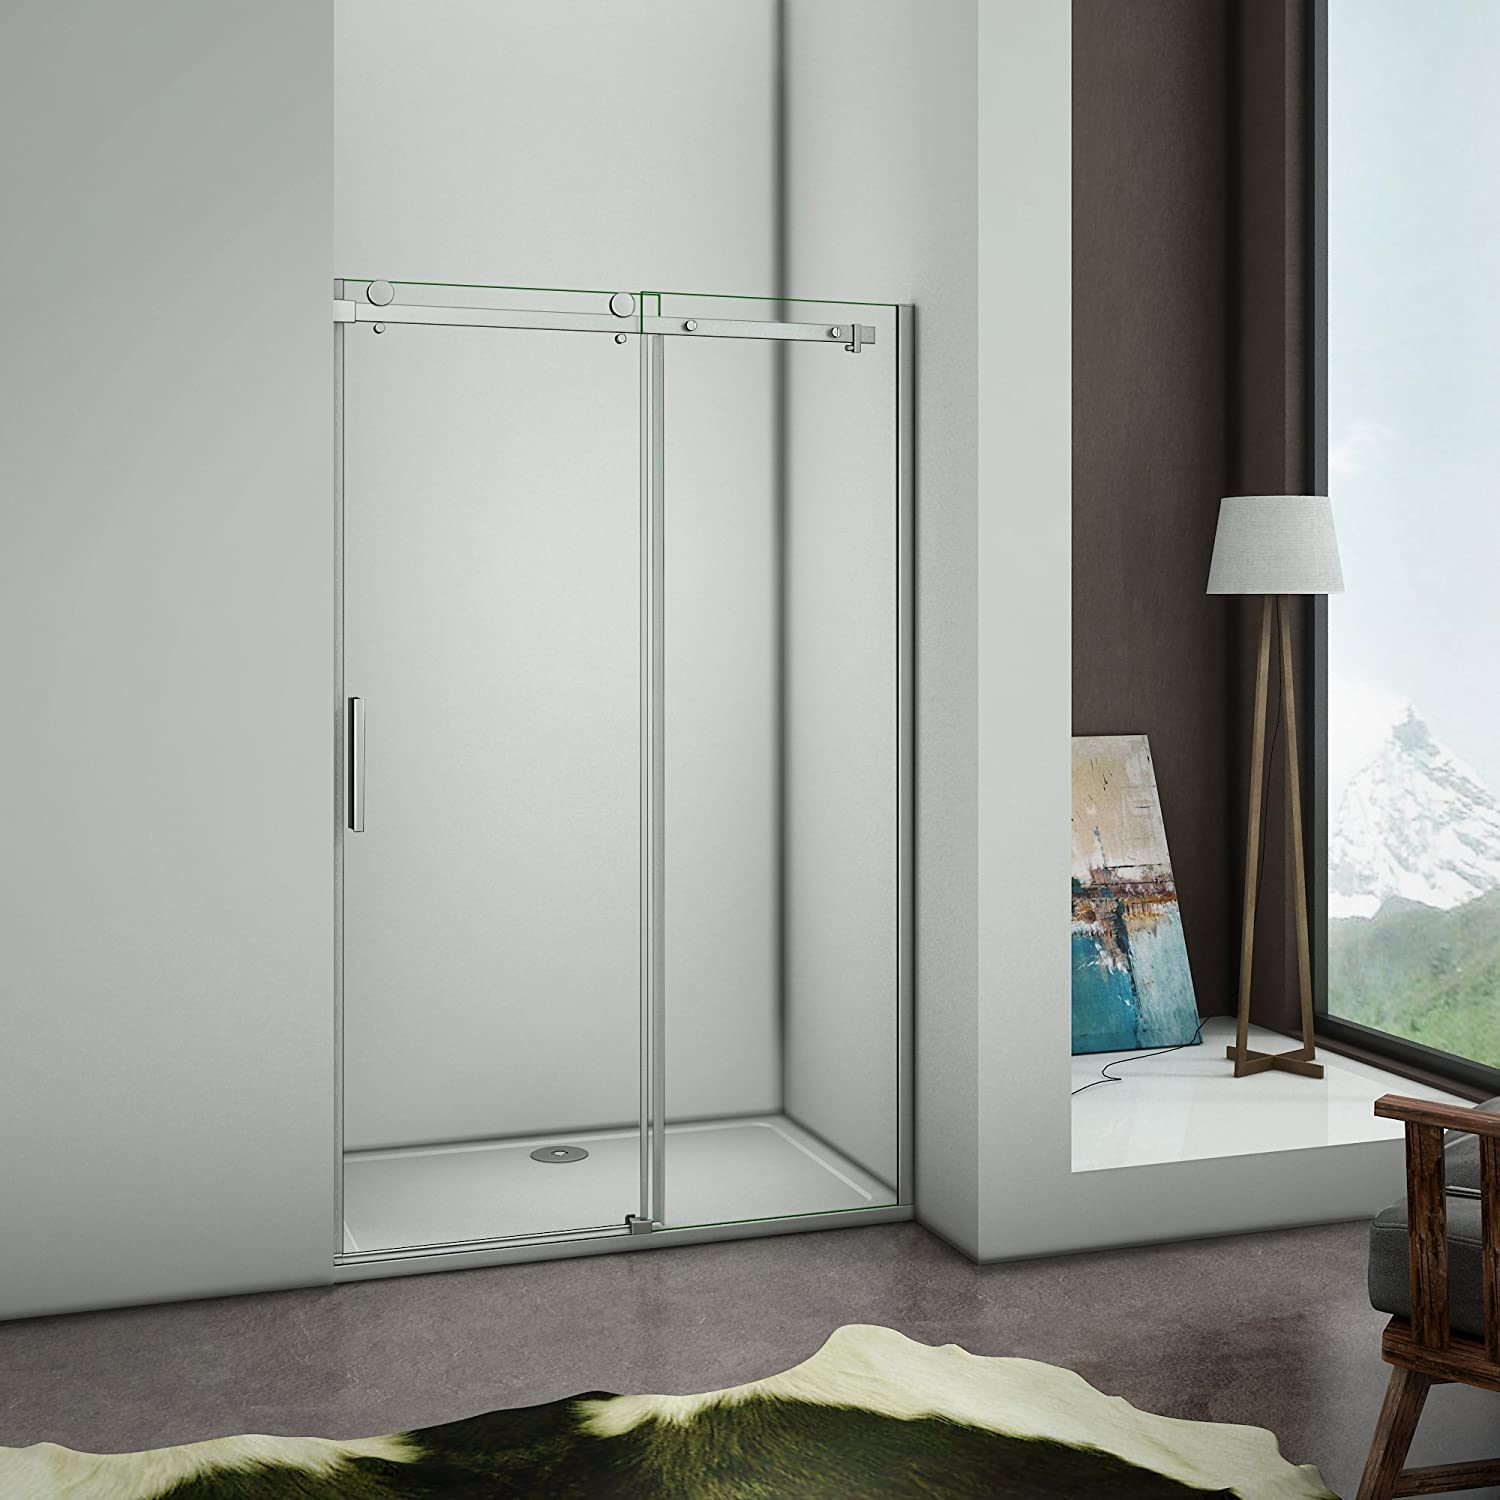 Perfect 1000x1950mm Frameless Sliding Shower Enclosure Door 6mm Safety Glass Screen Cubicle